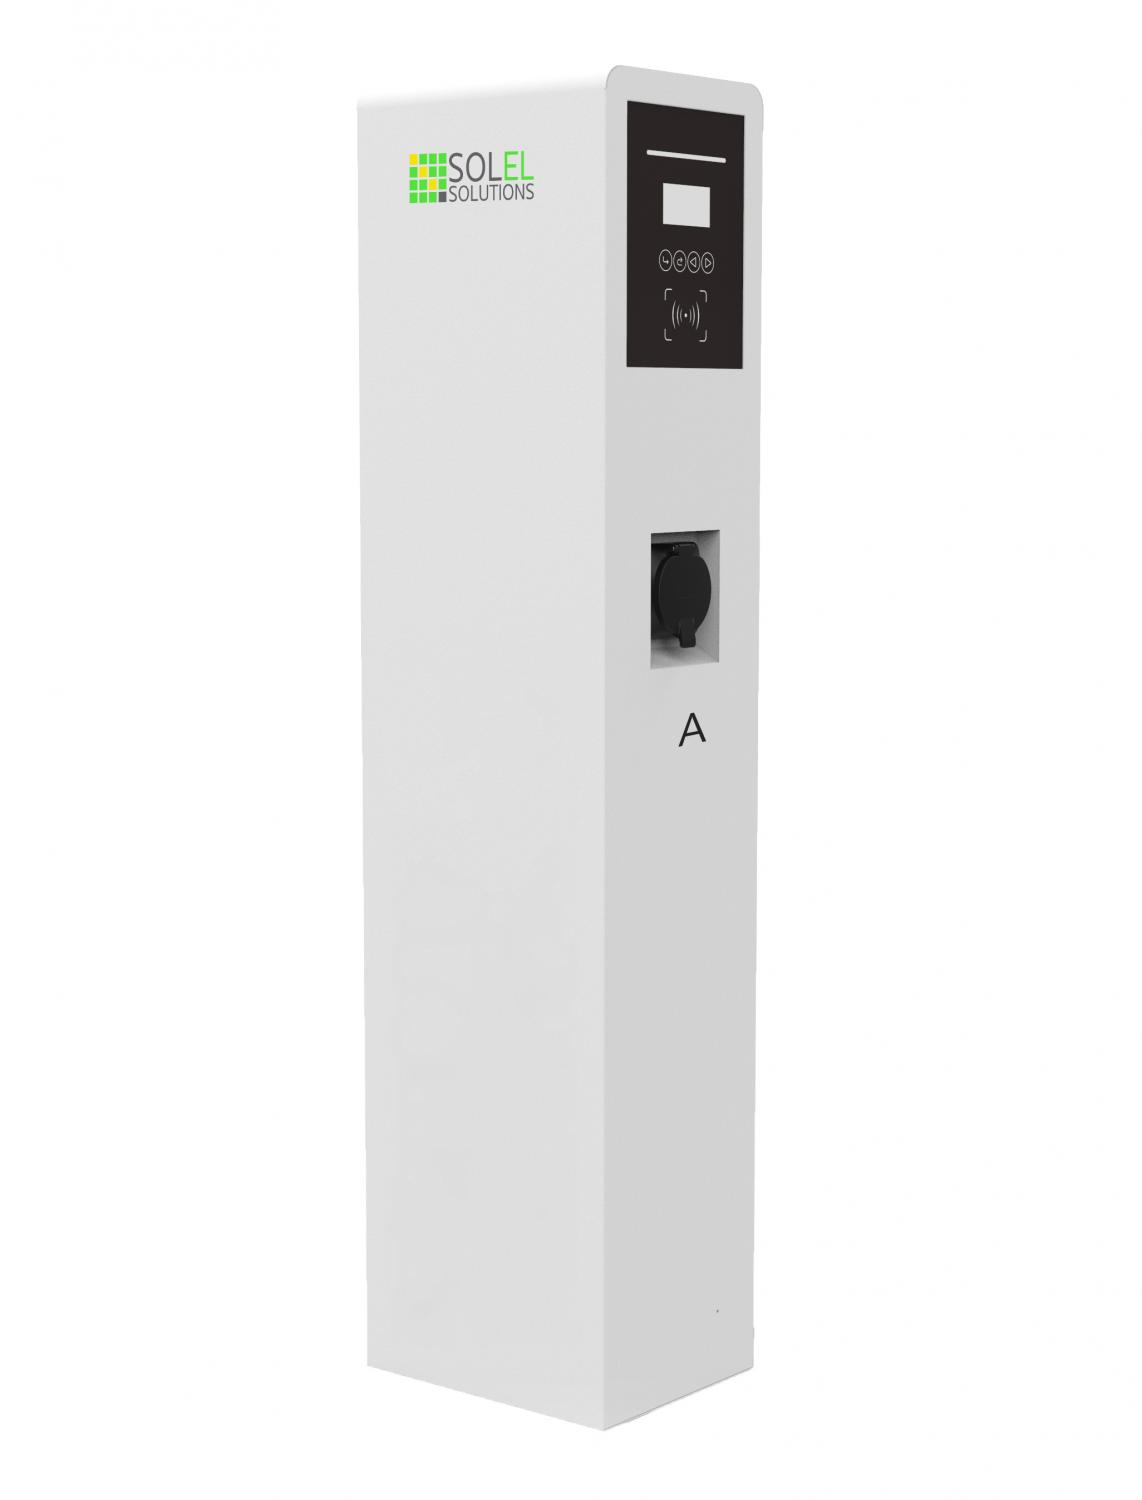 Solel Solutions - Business Series - 2 x 22kW, 3-fas AC Laddbox